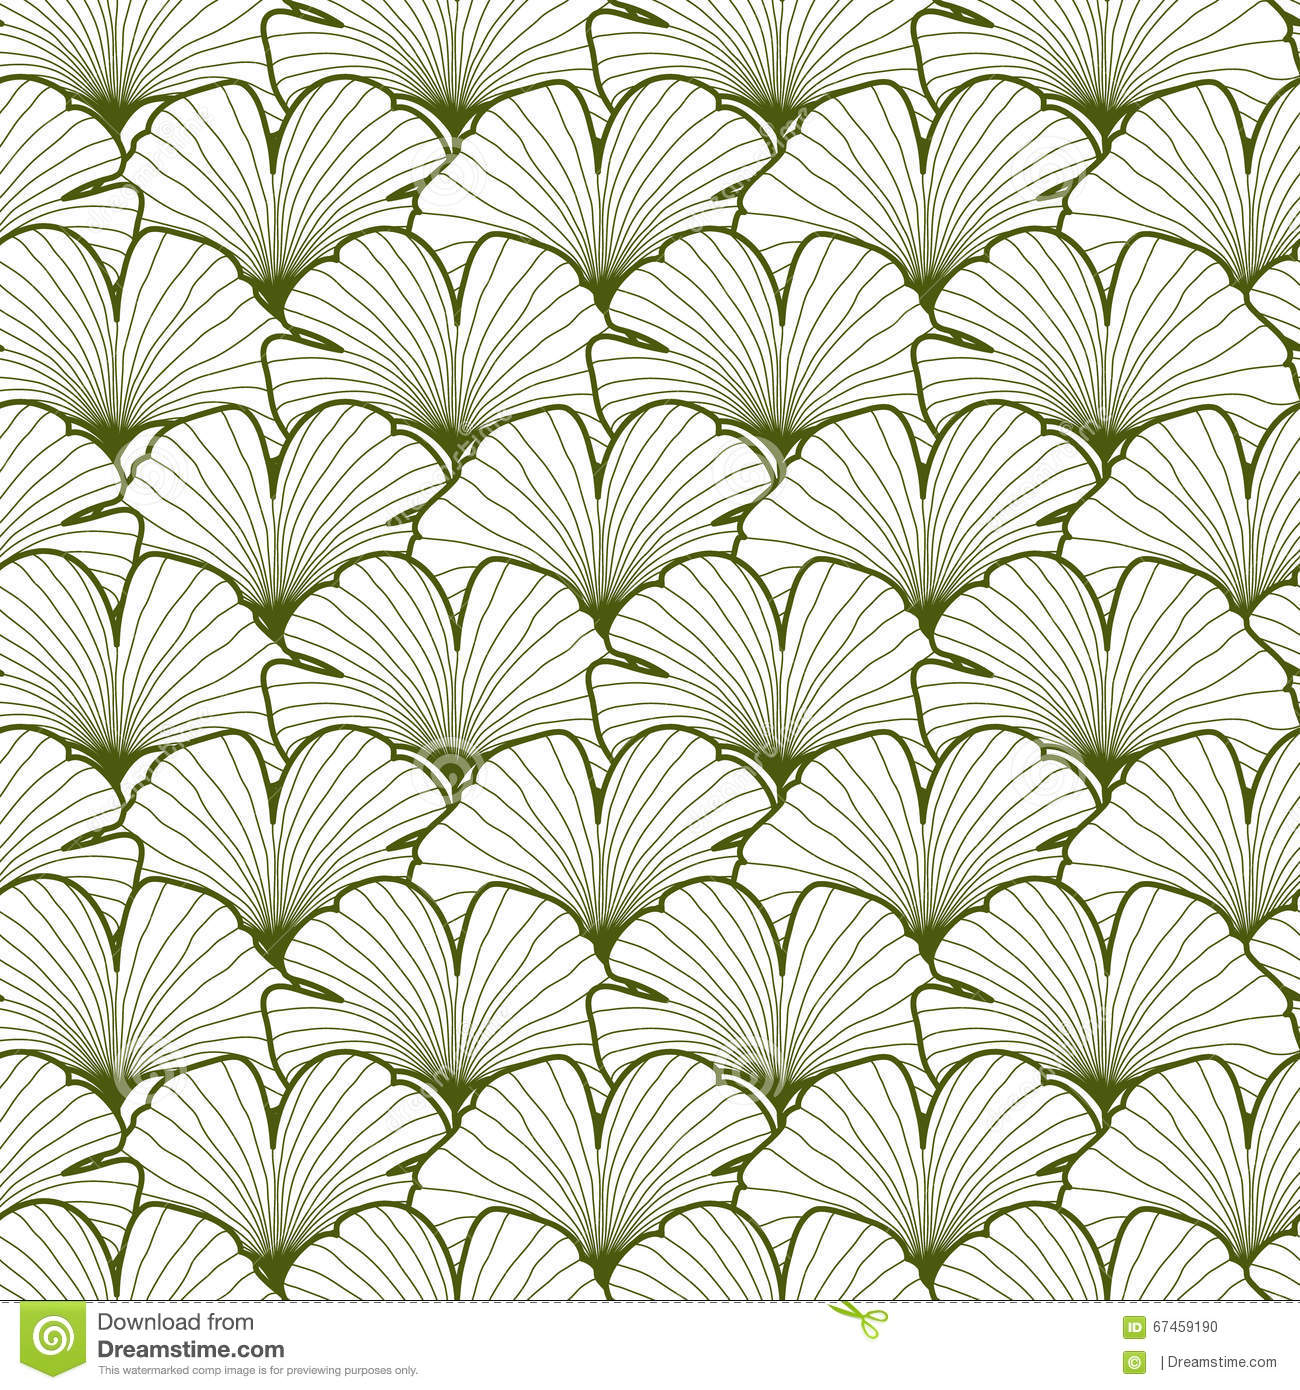 Fabric tree pattern - Green And White Graphic Ginkgo Leaves Seamless Pattern